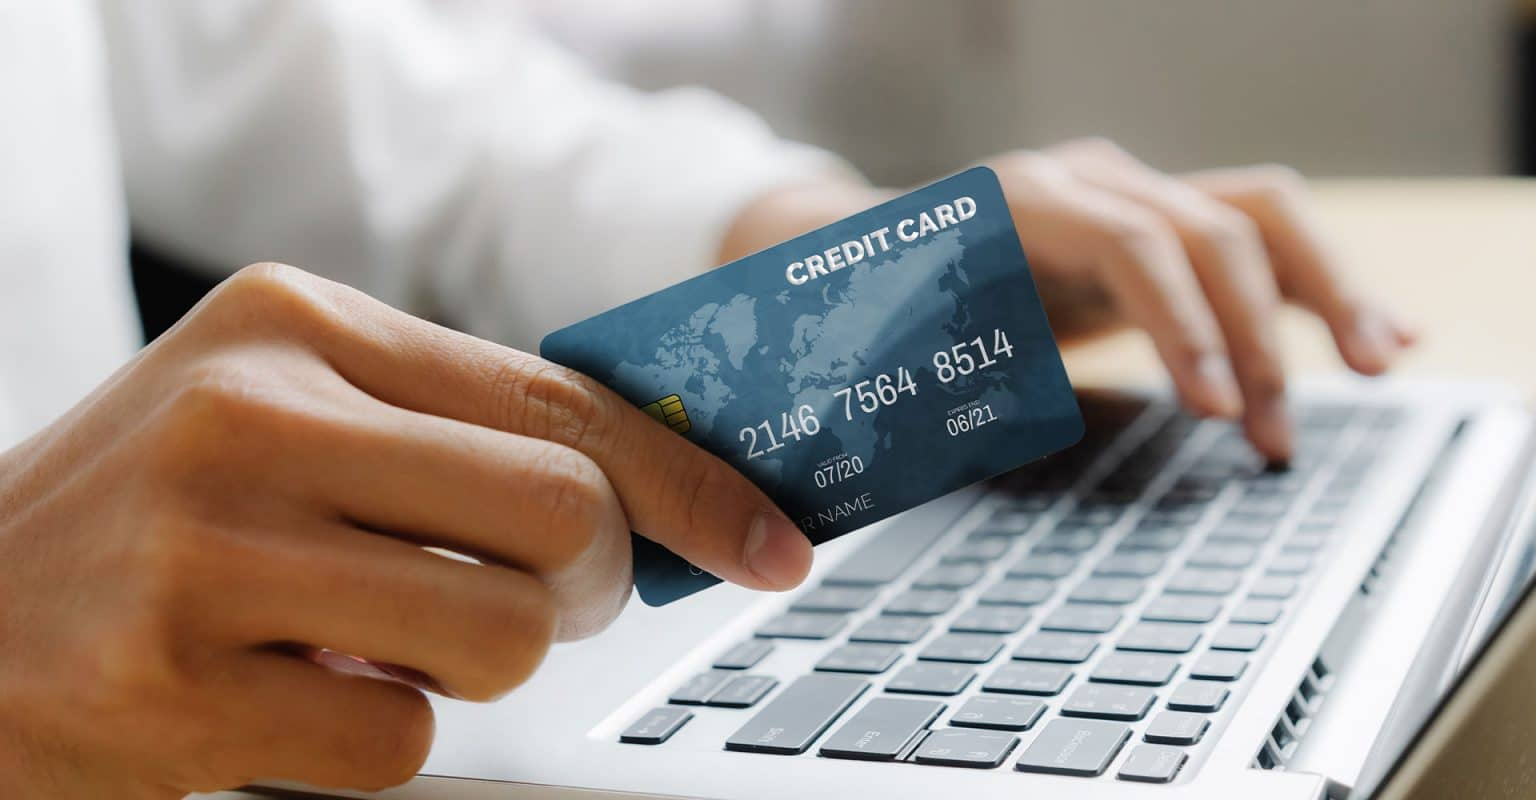 7 Steps to Get Control of High Interest Credit Card Debt